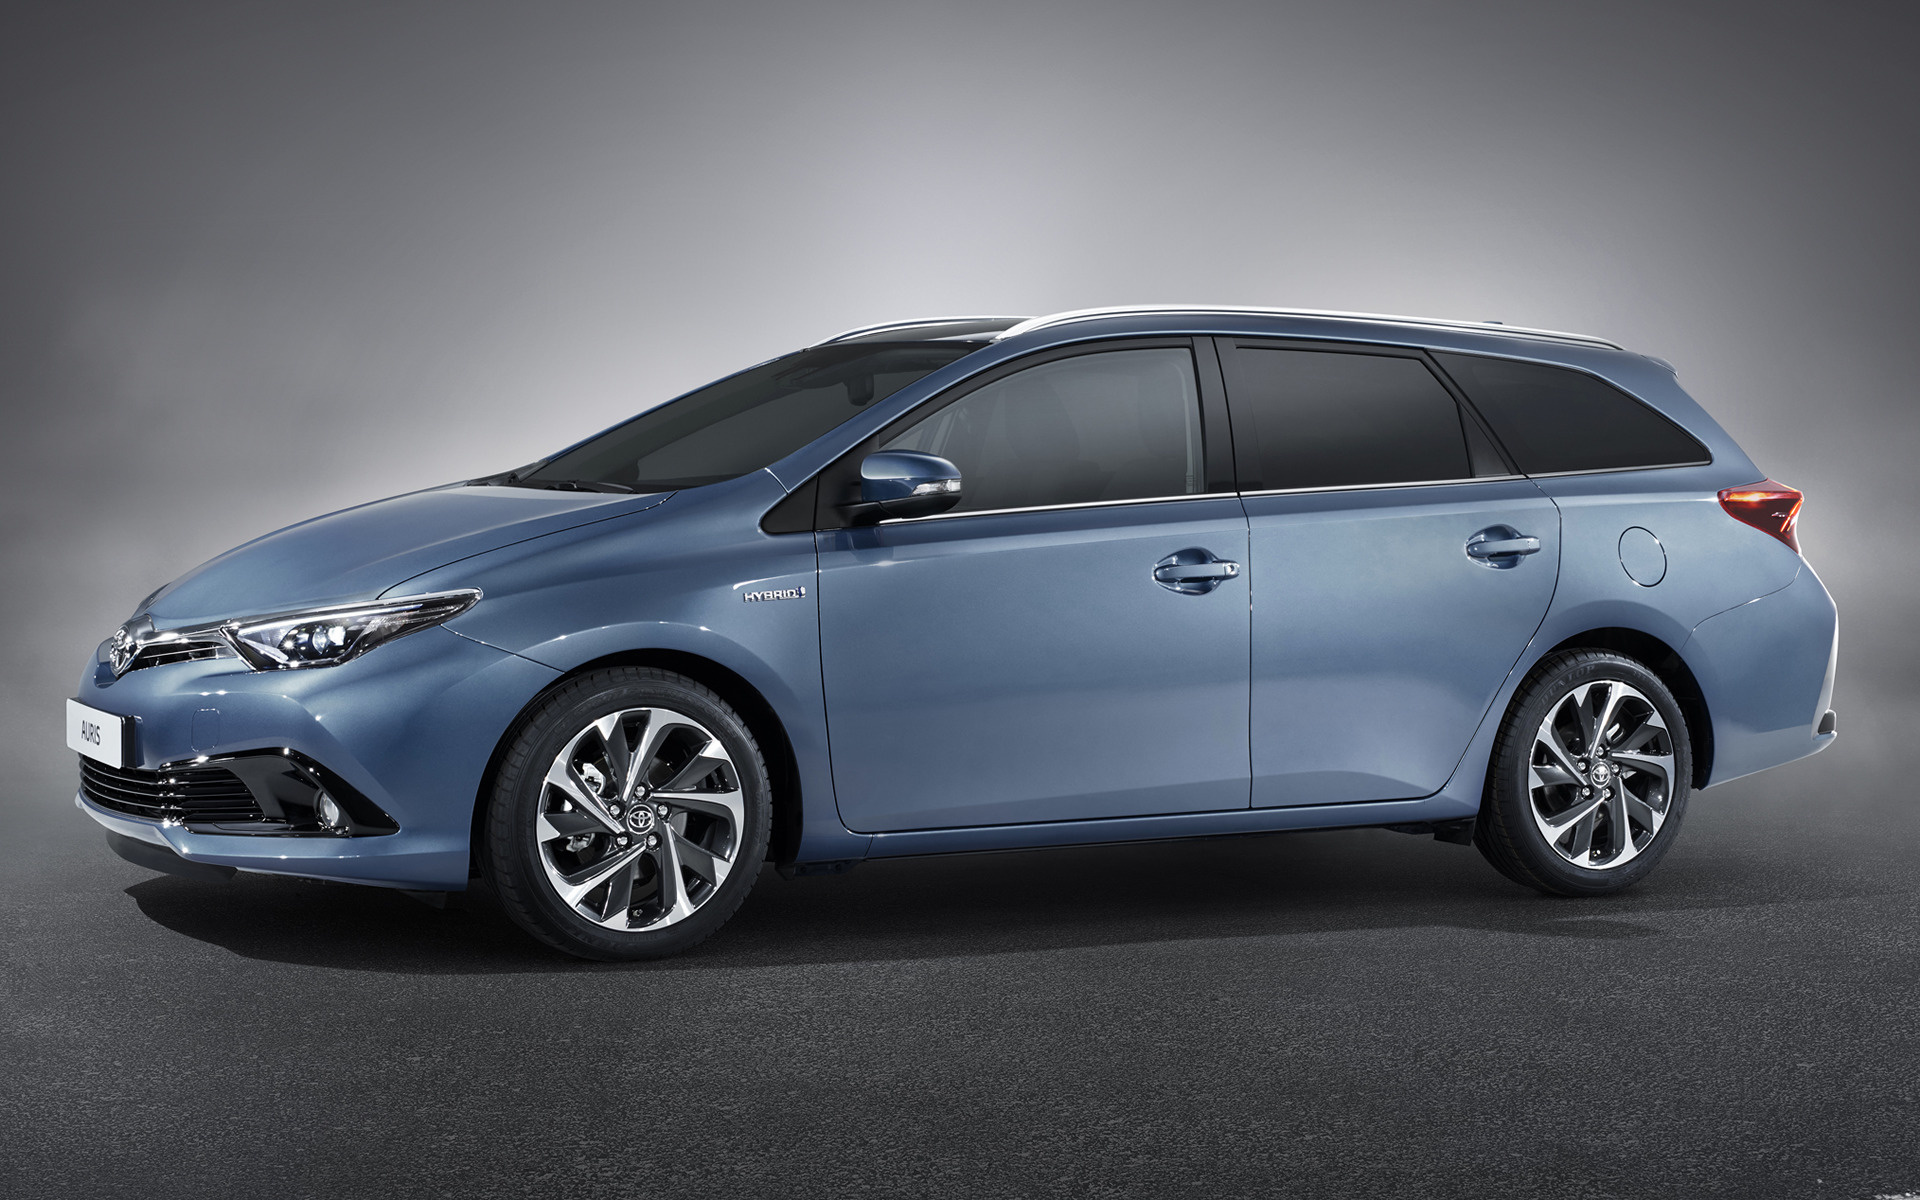 Toyota Auris Touring Sports Hybrid (2015) Wallpapers and ...